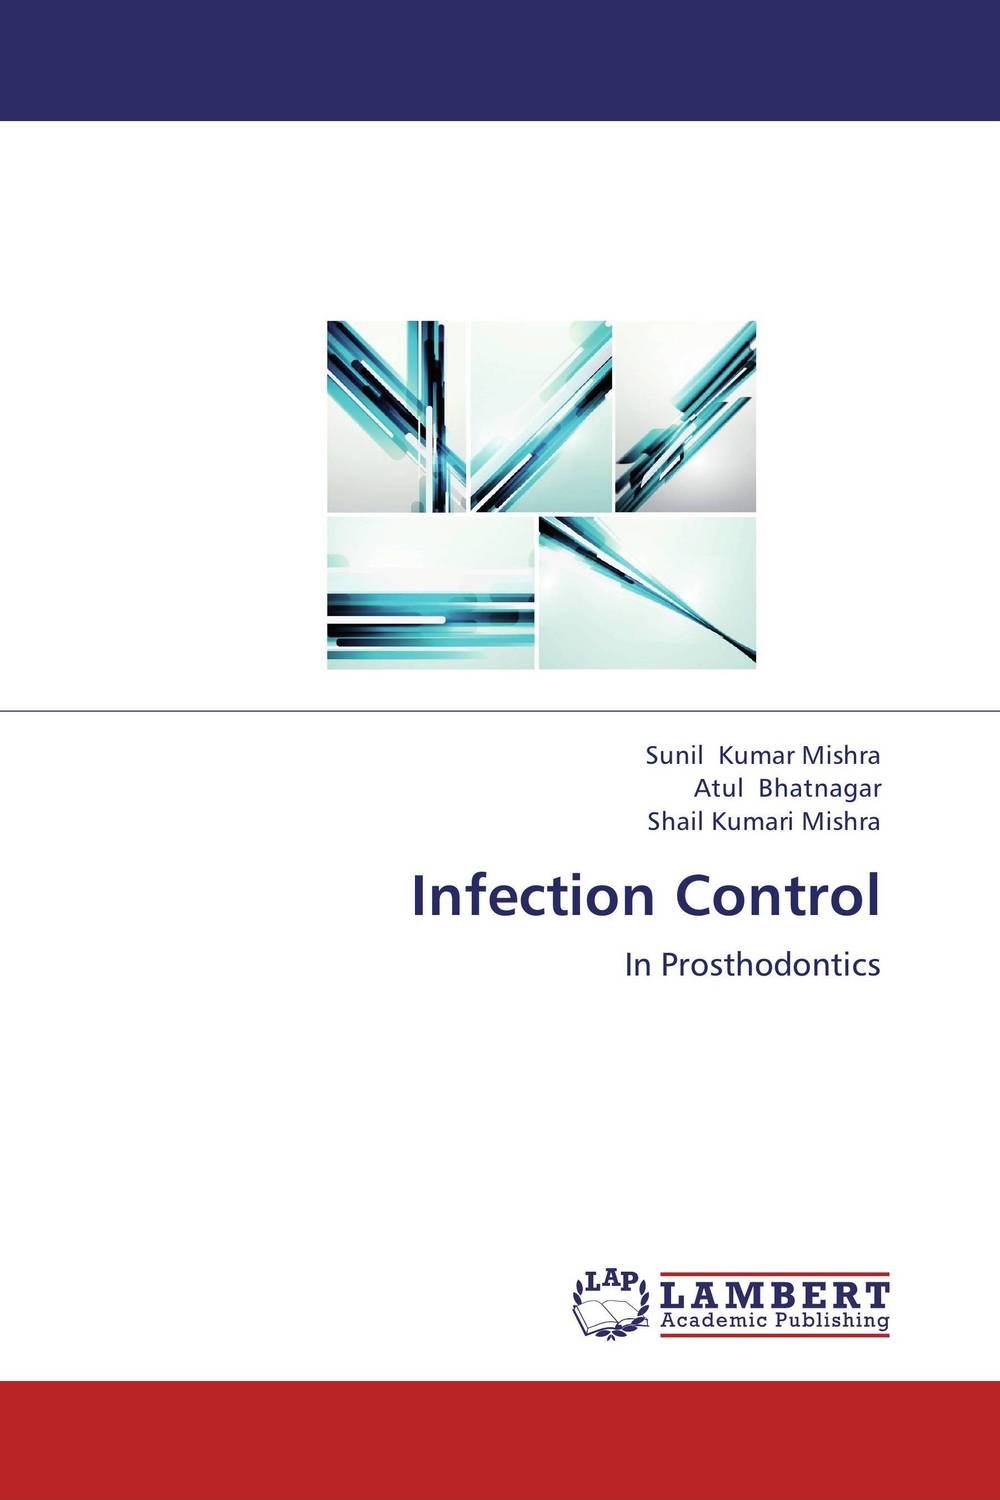 Infection Control himanshu aeran and sunit kumar jurel spray disinfection of dental impressions